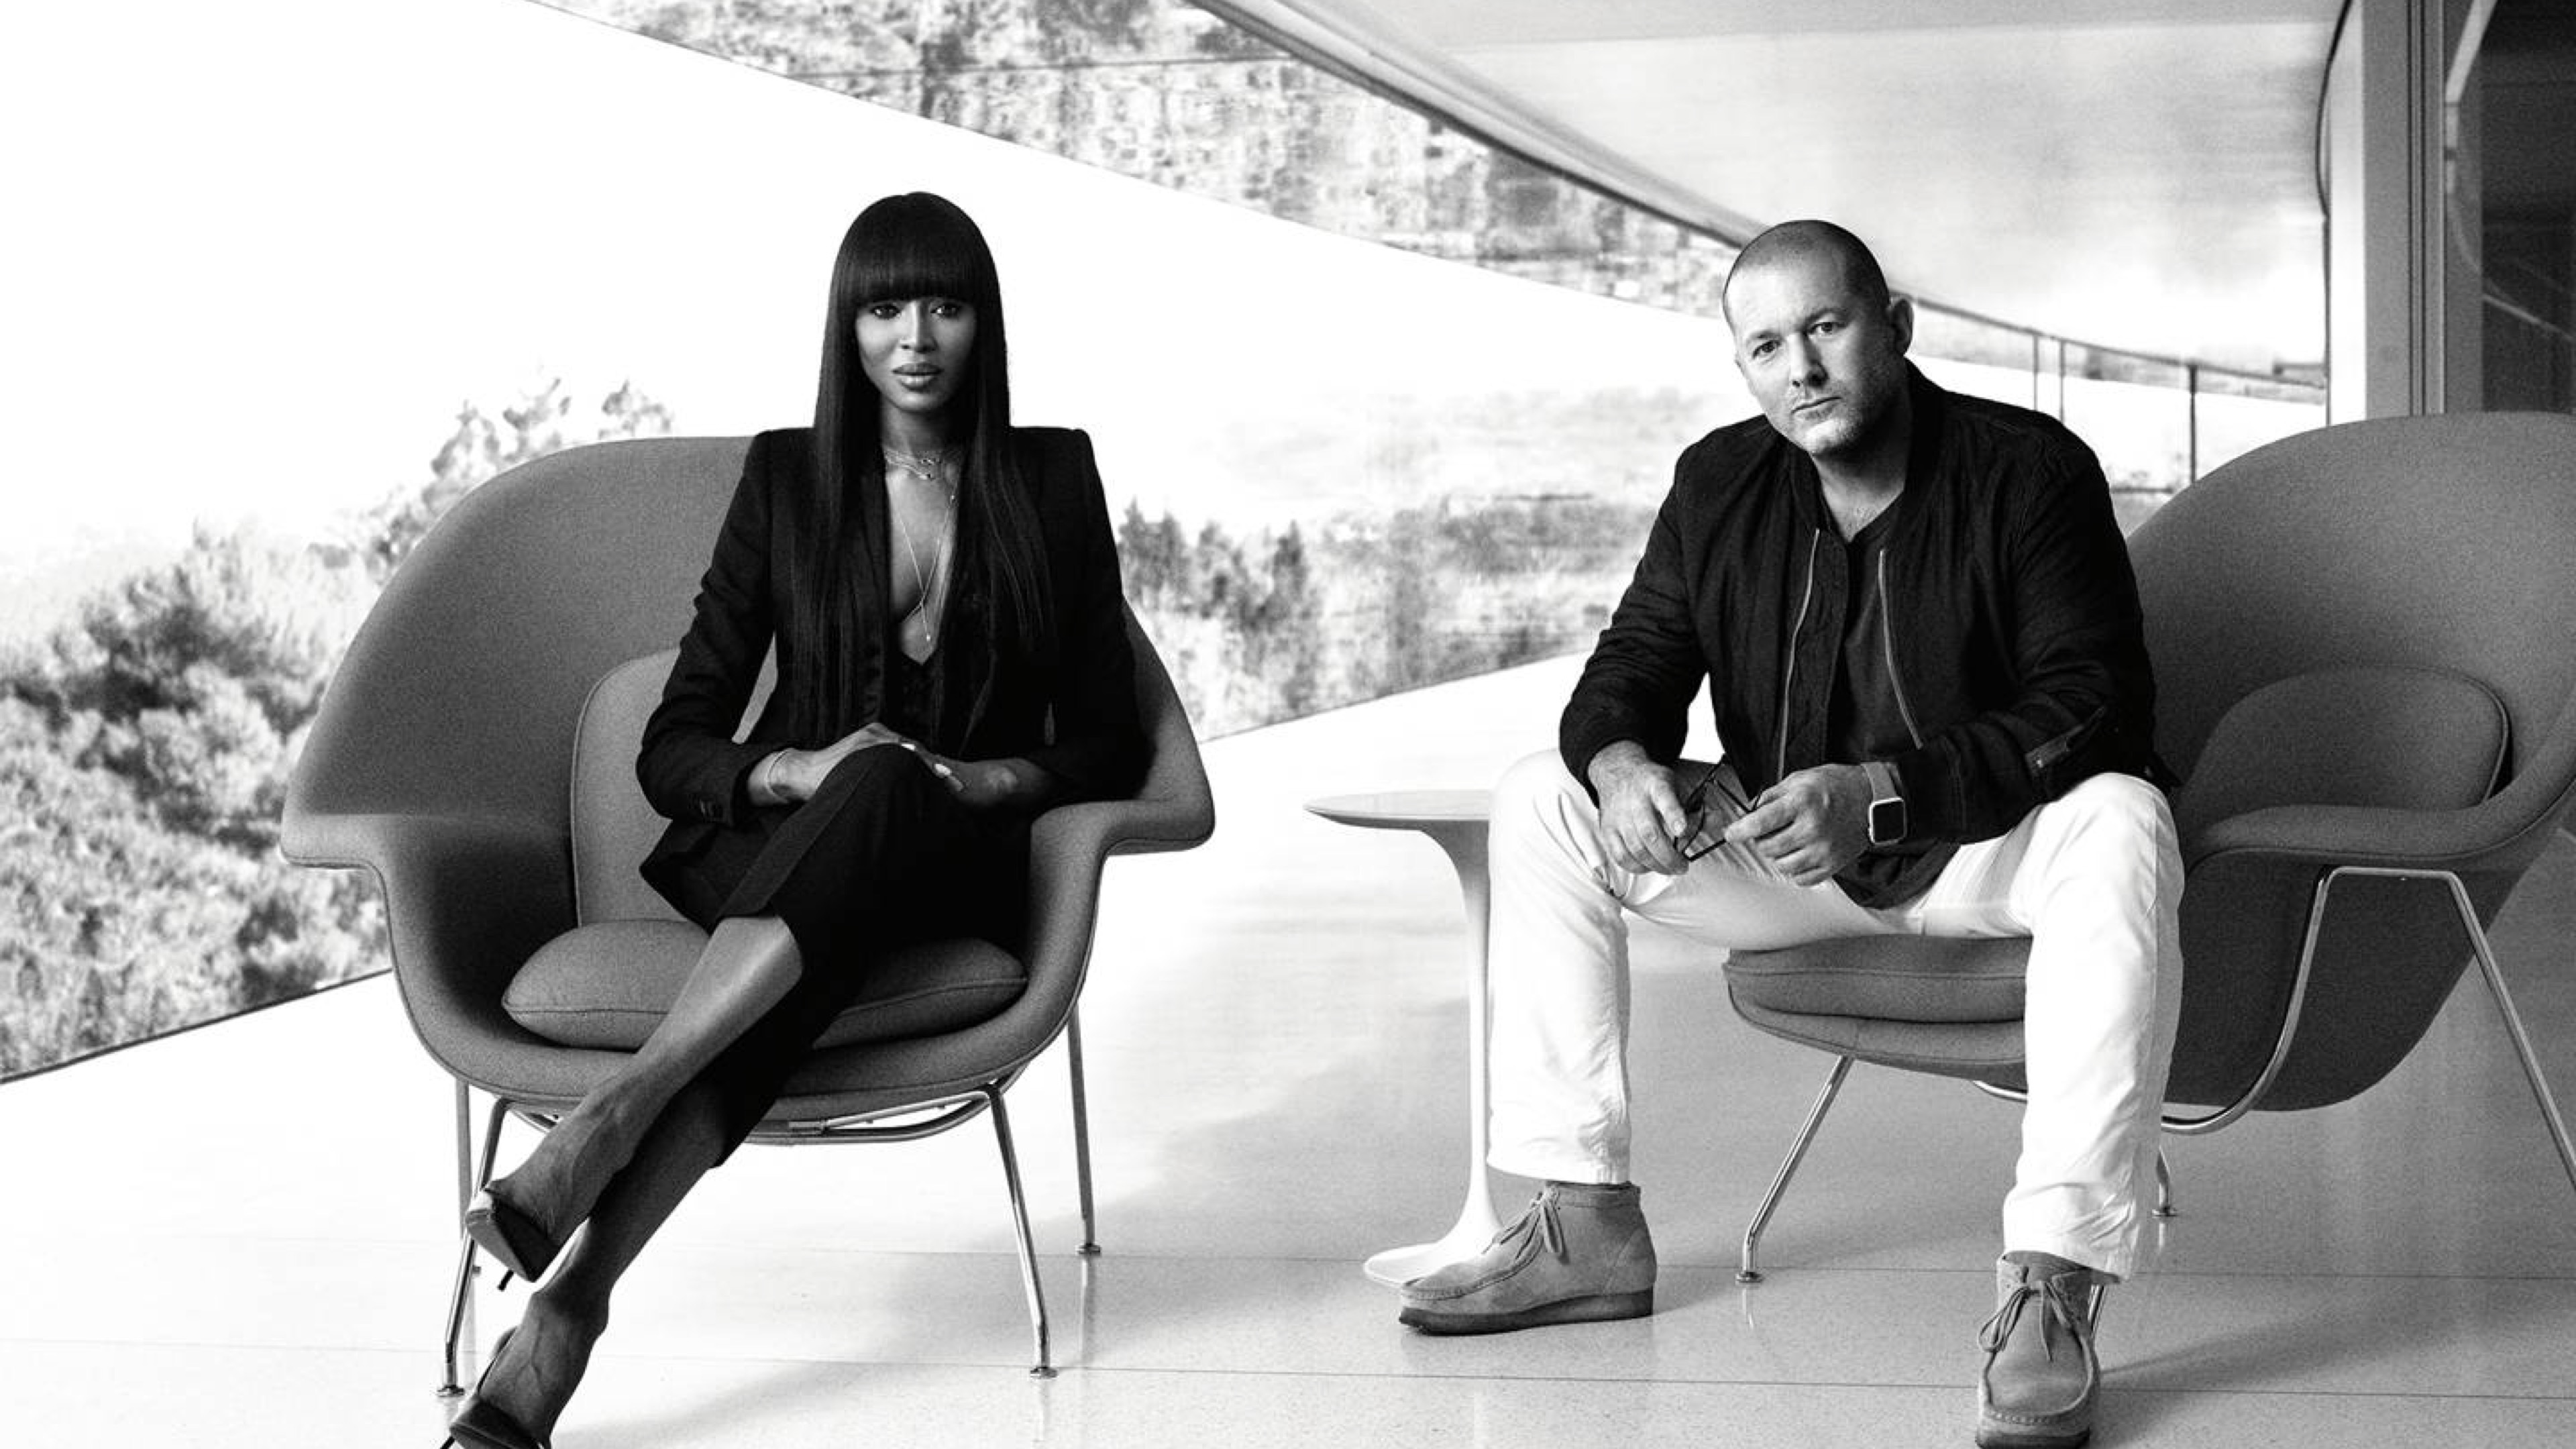 Jony Ive discusses secrecy, design exhibition sponsorship in interview with model Naomi Campbell